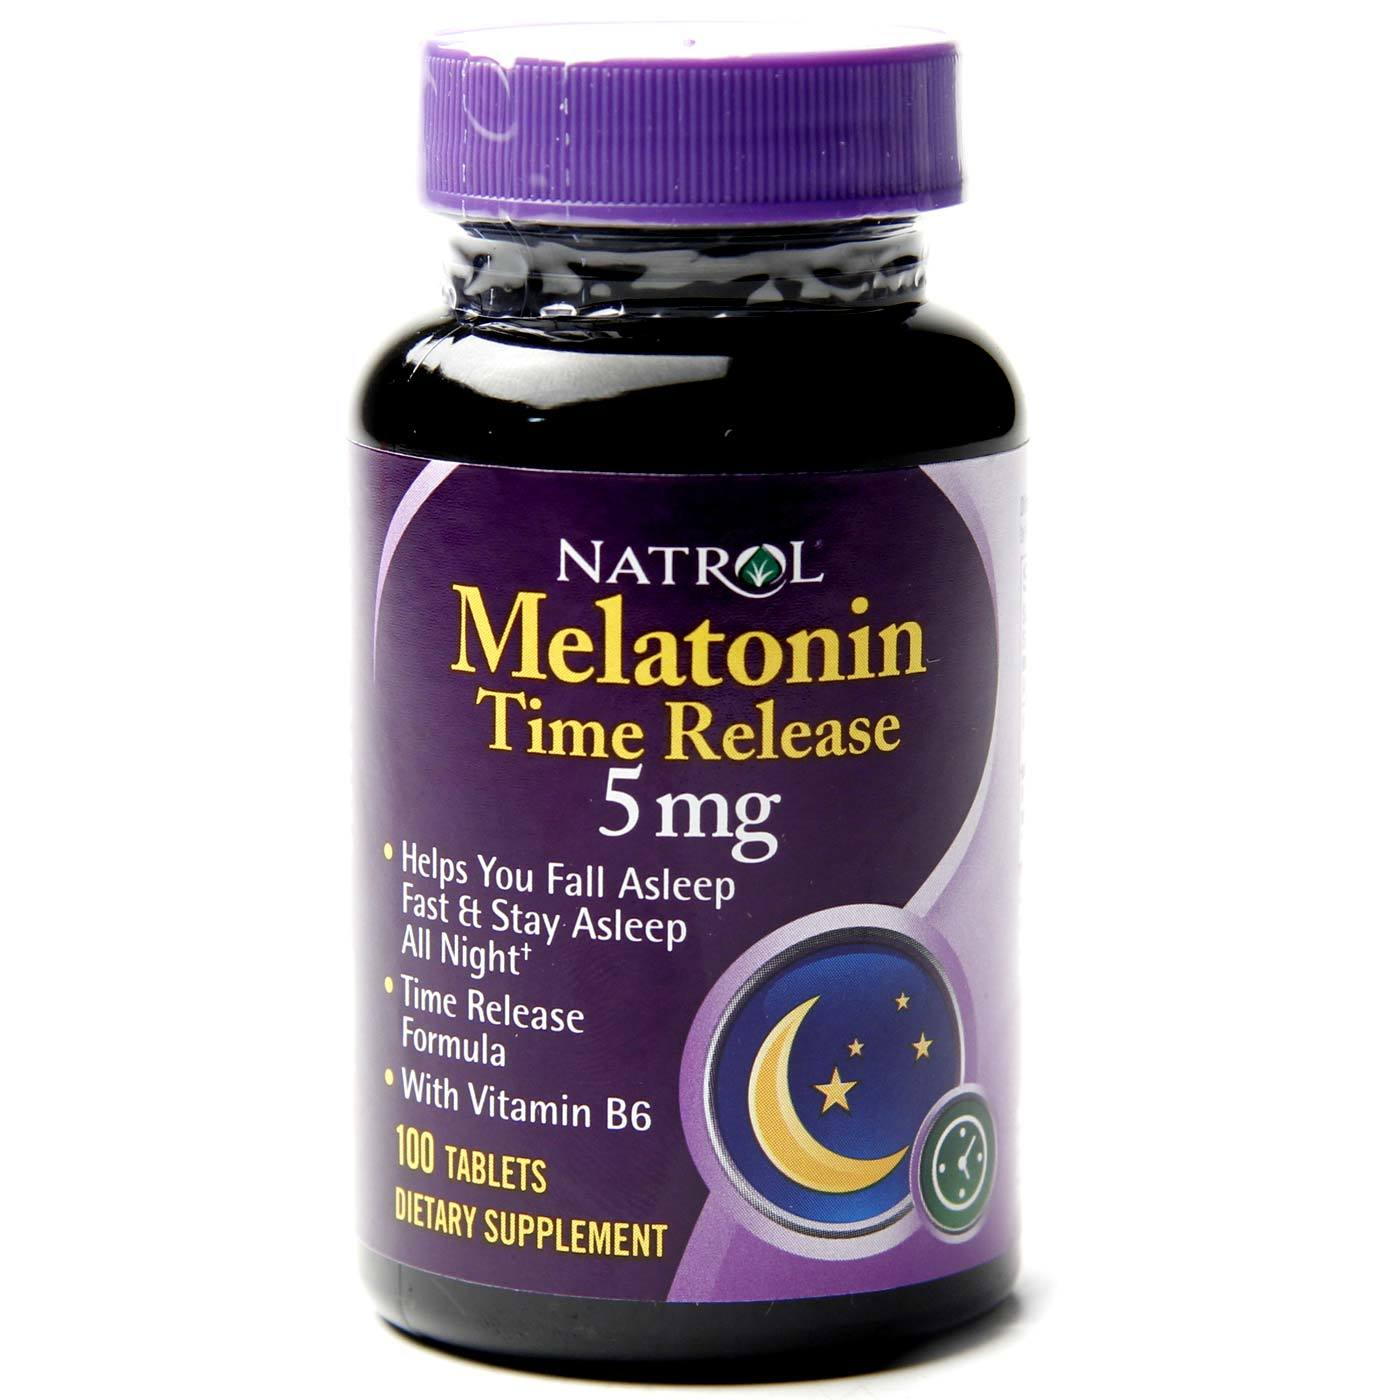 Natrol Melatonin Time Release 5 mg